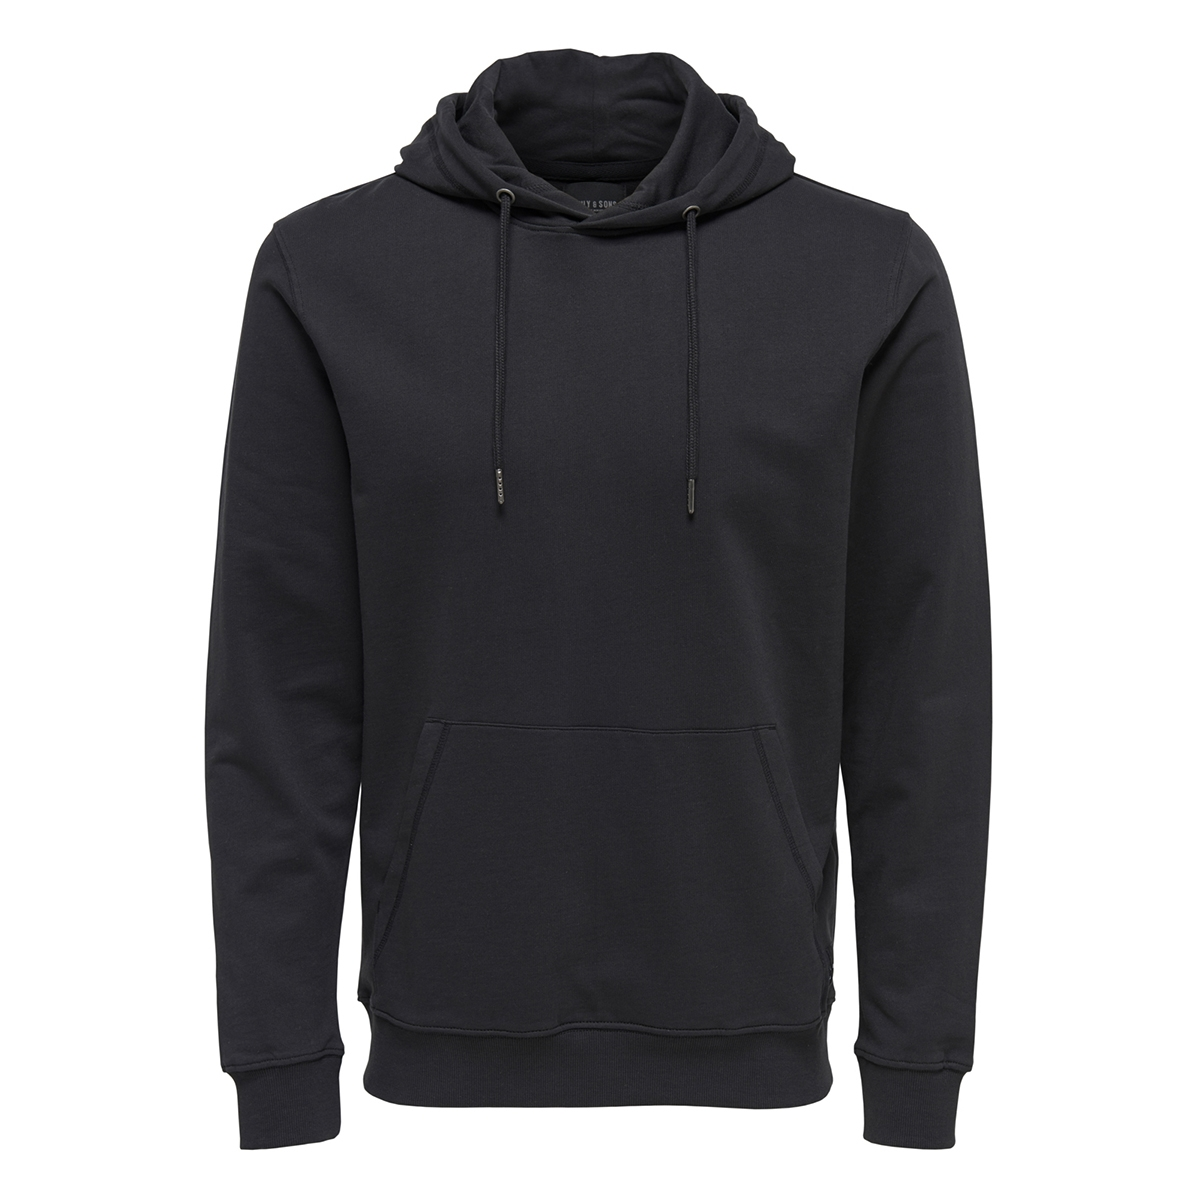 onsbasic sweat hoodie unbrushed noos 22012006 only & sons sweater black